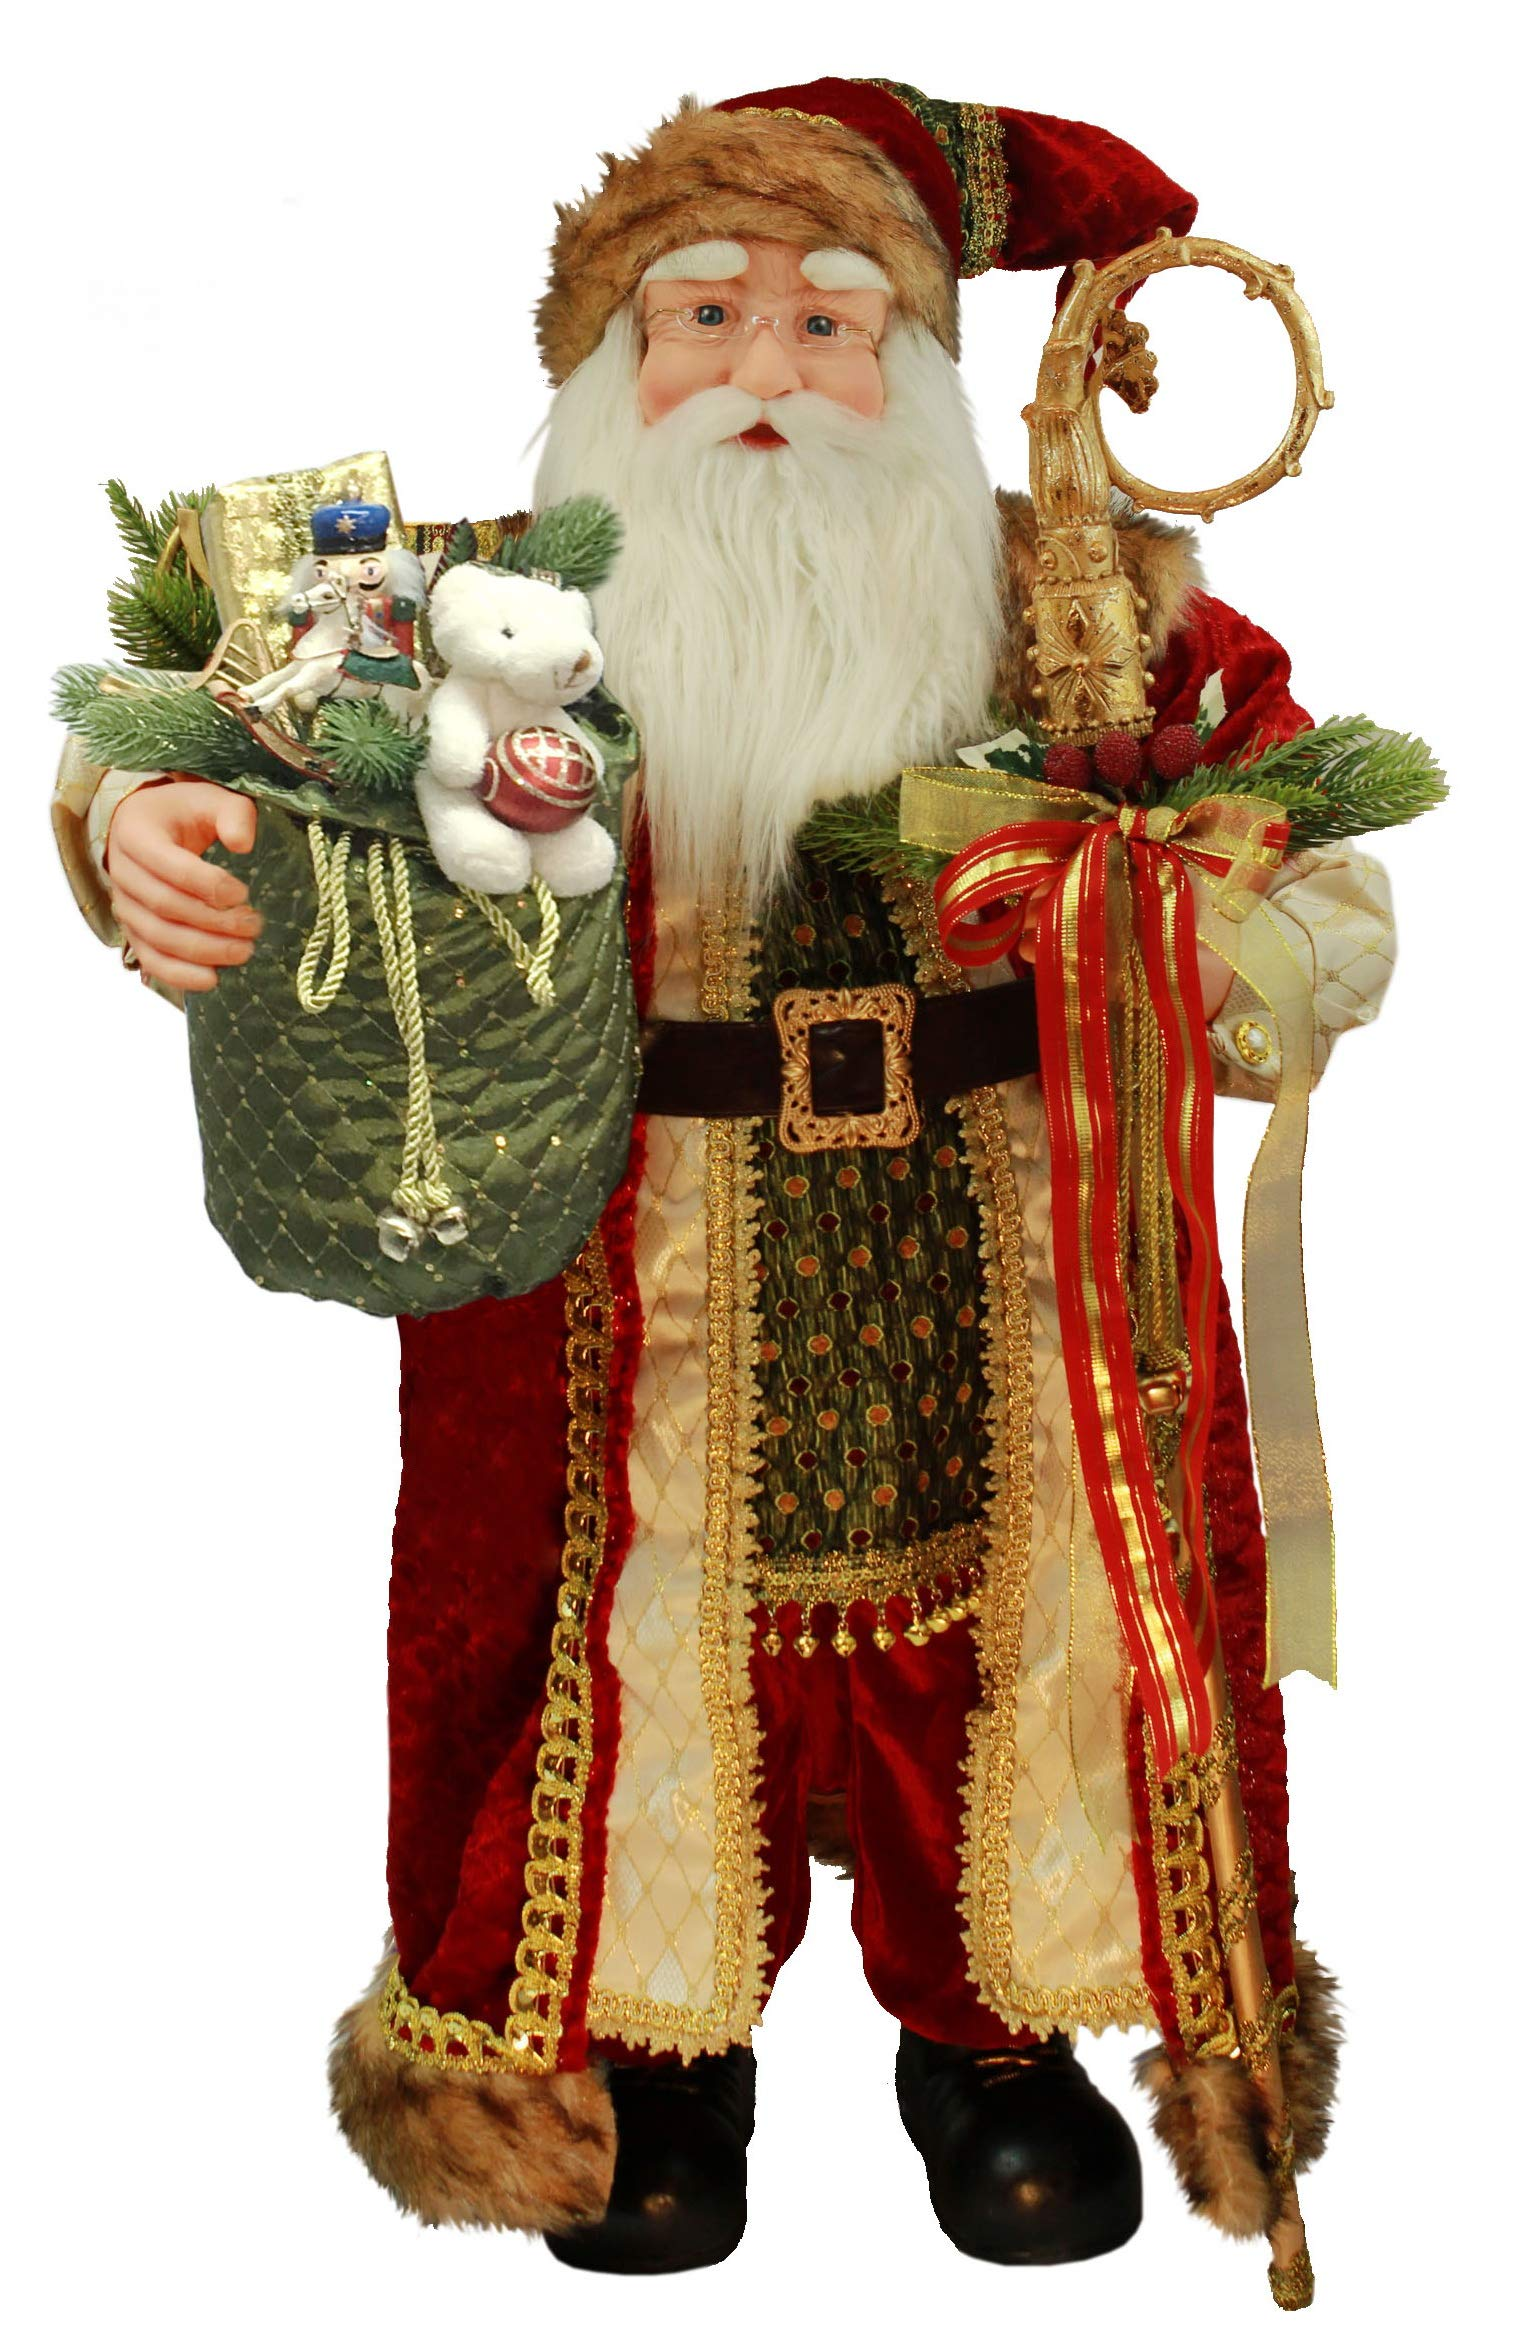 Windy Hill Collection 36'' Inch Standing Grand Santa Claus Christmas Figurine Figure Decoration 53603